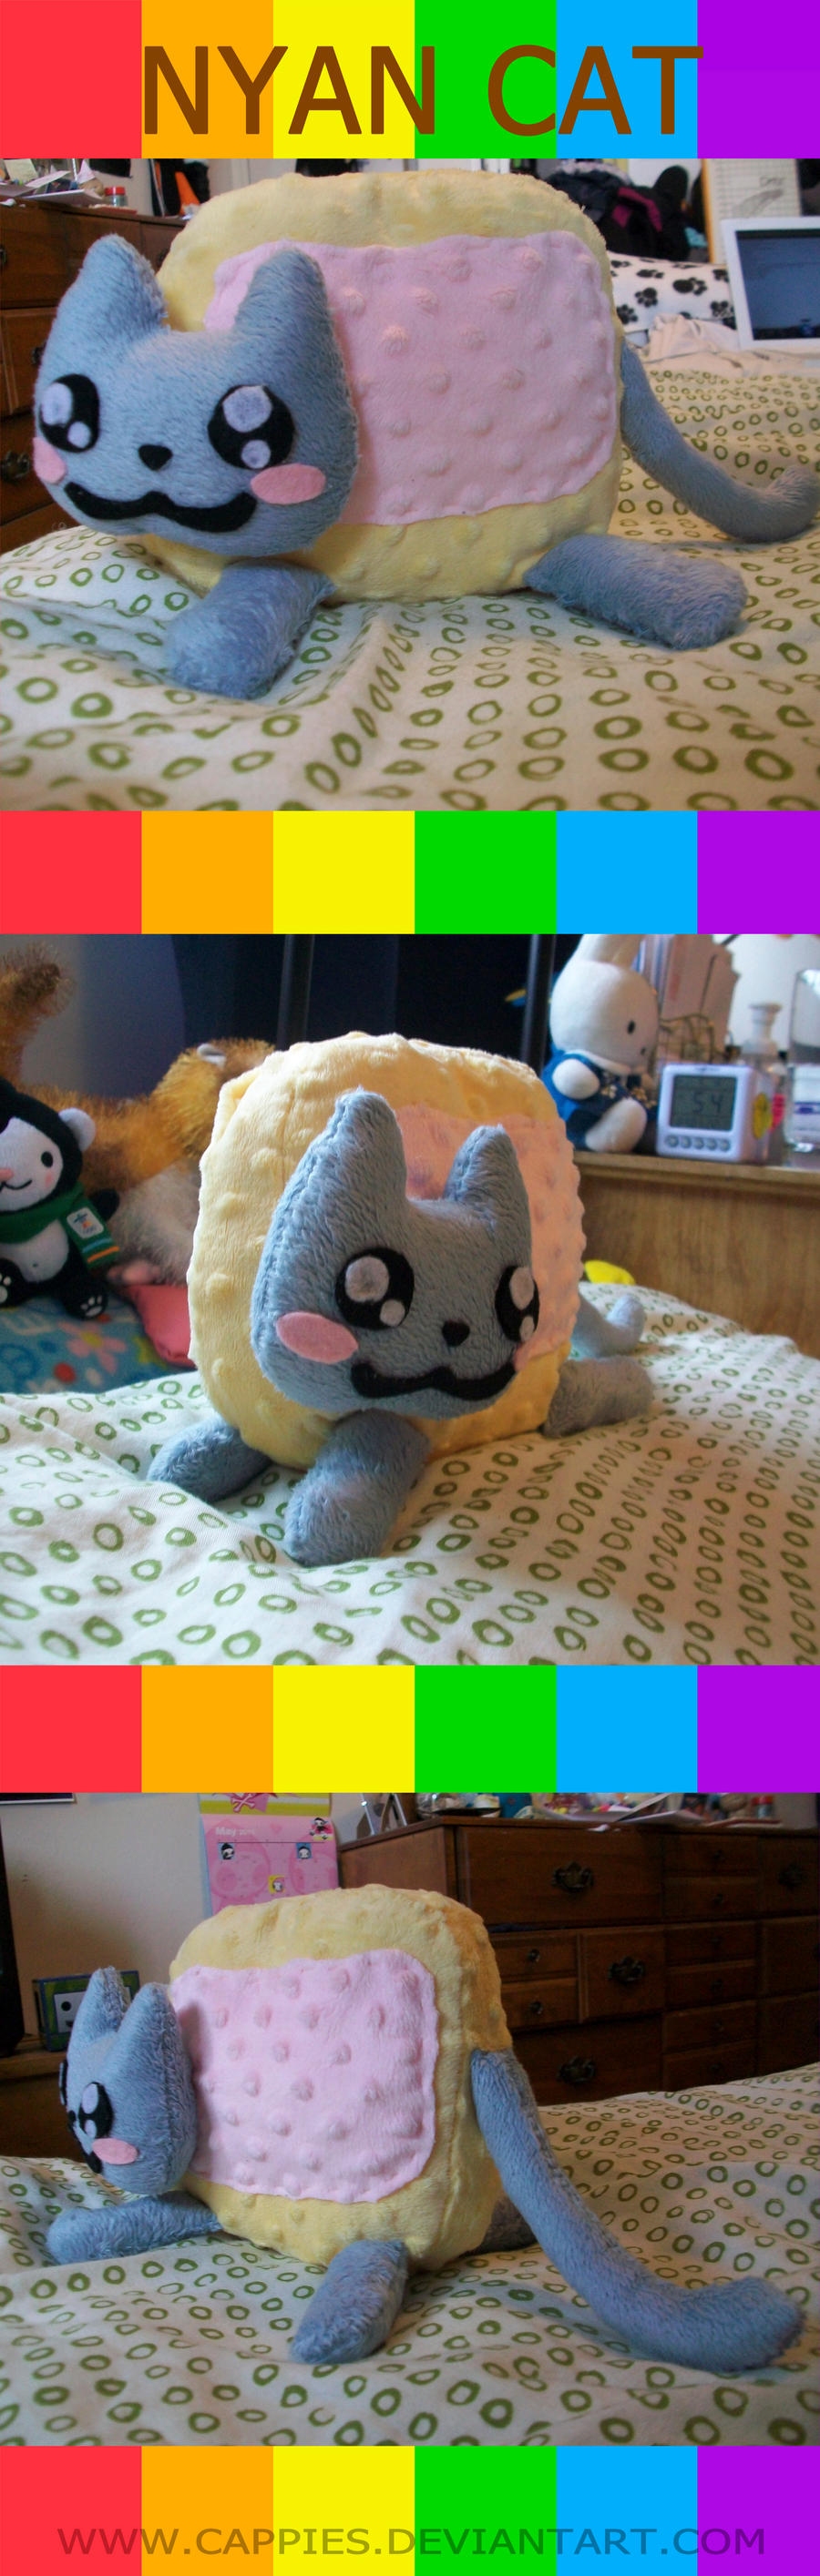 Pop Tart Kitty Plushie by Cappies